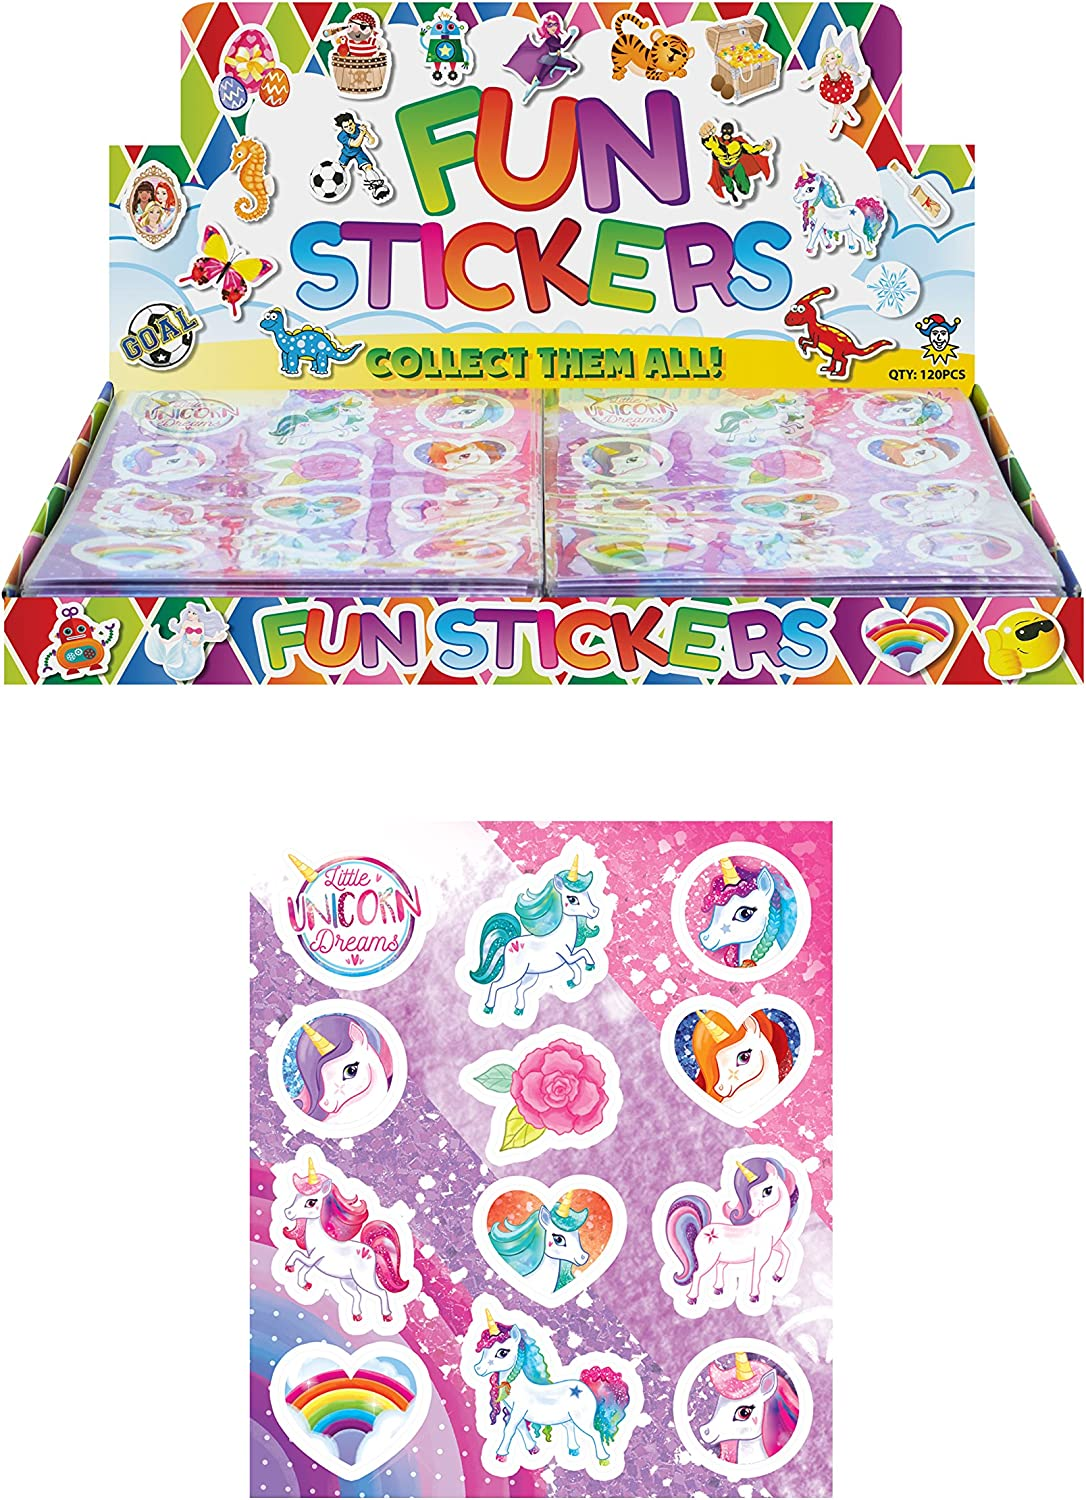 1 pre-filled Unicorn themed sparkle Party bag contain stickers gliders,.....